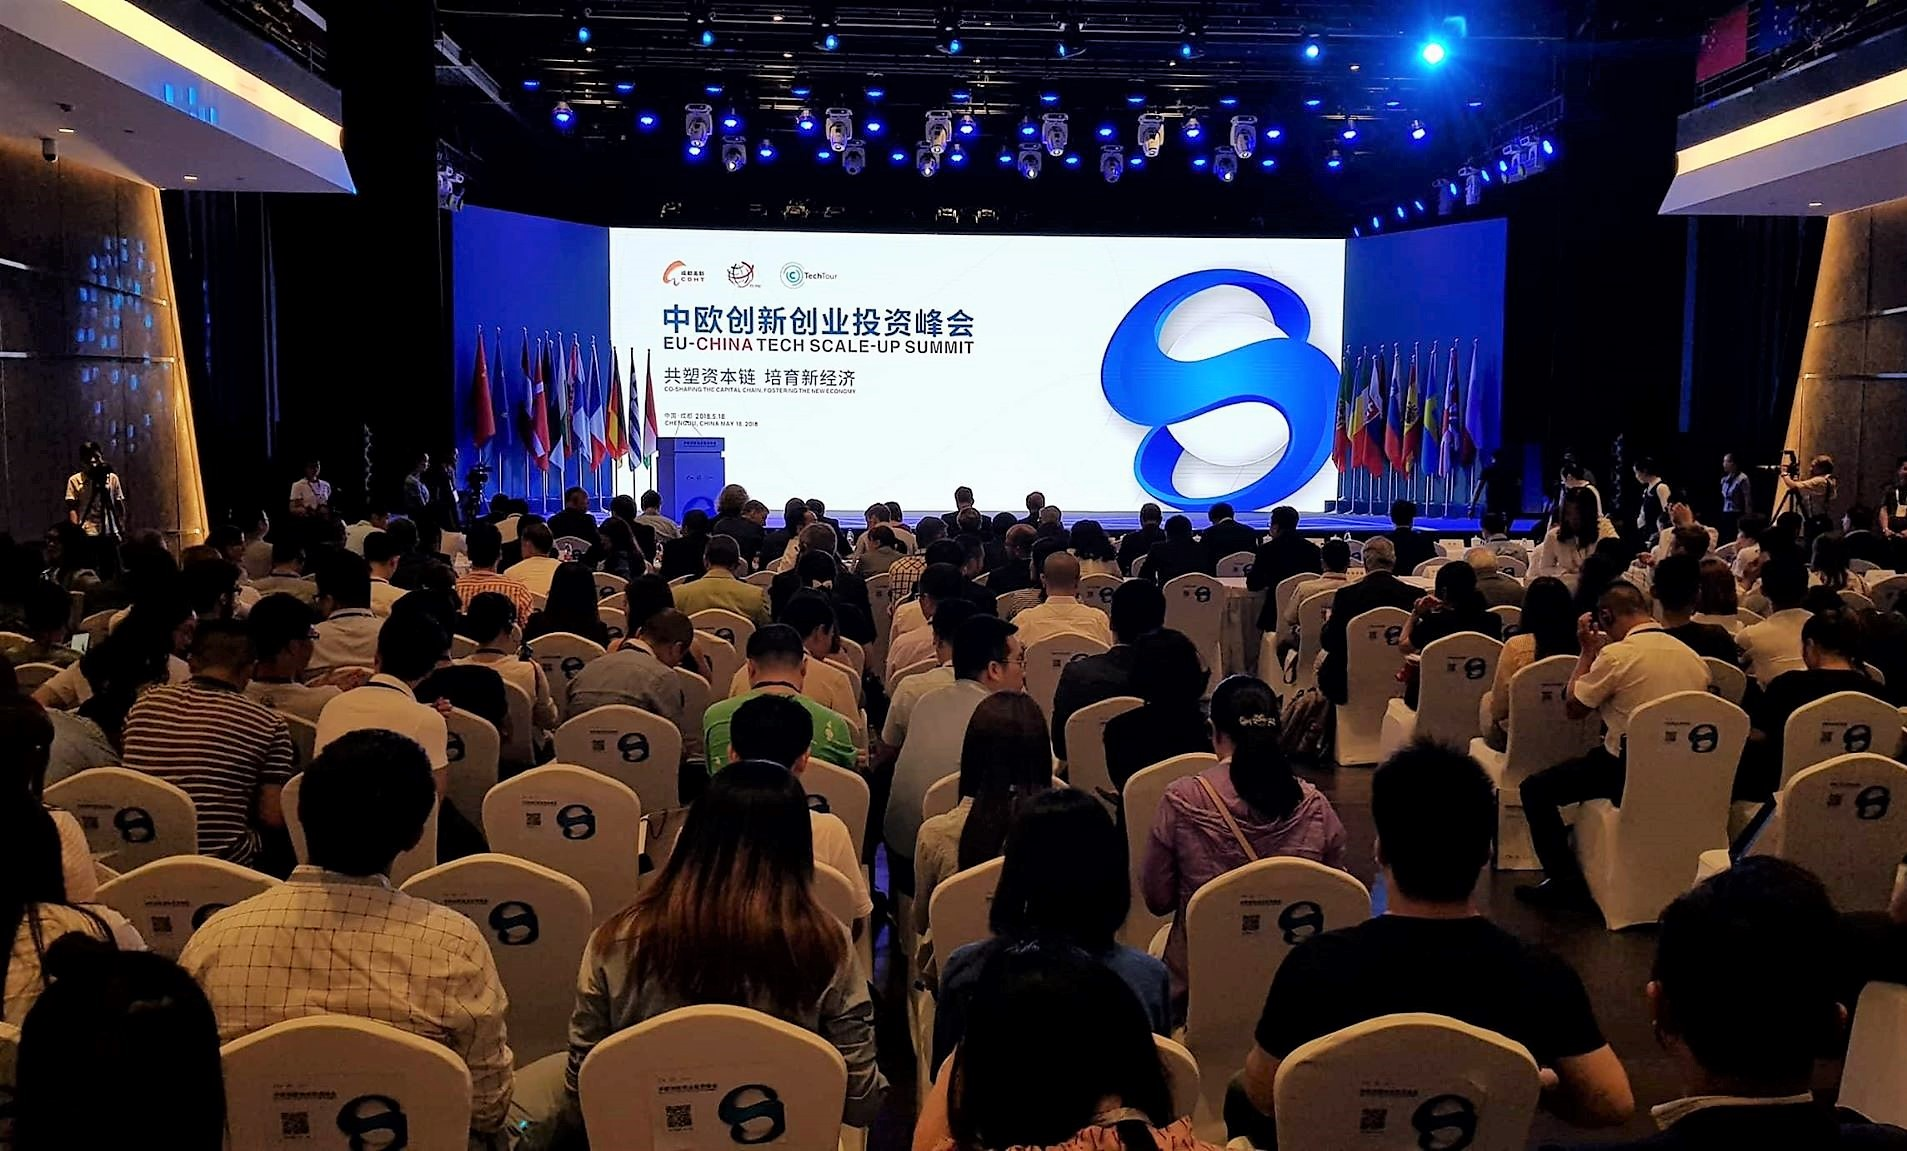 EU-China Tech Scale-Up Summit in Sichuan Province: Focus on new economy industries